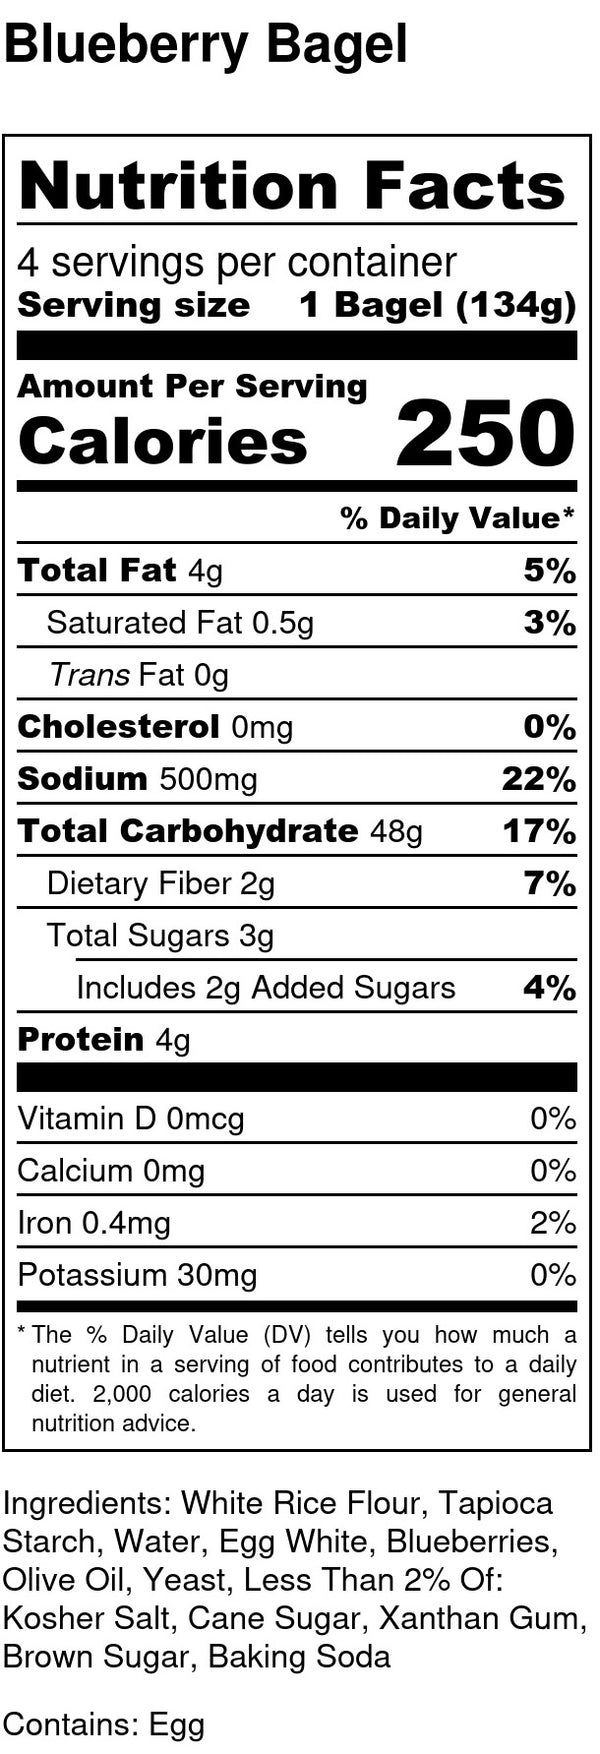 nutrition facts for gluten free and dairy free blueberry bagels contains eggs